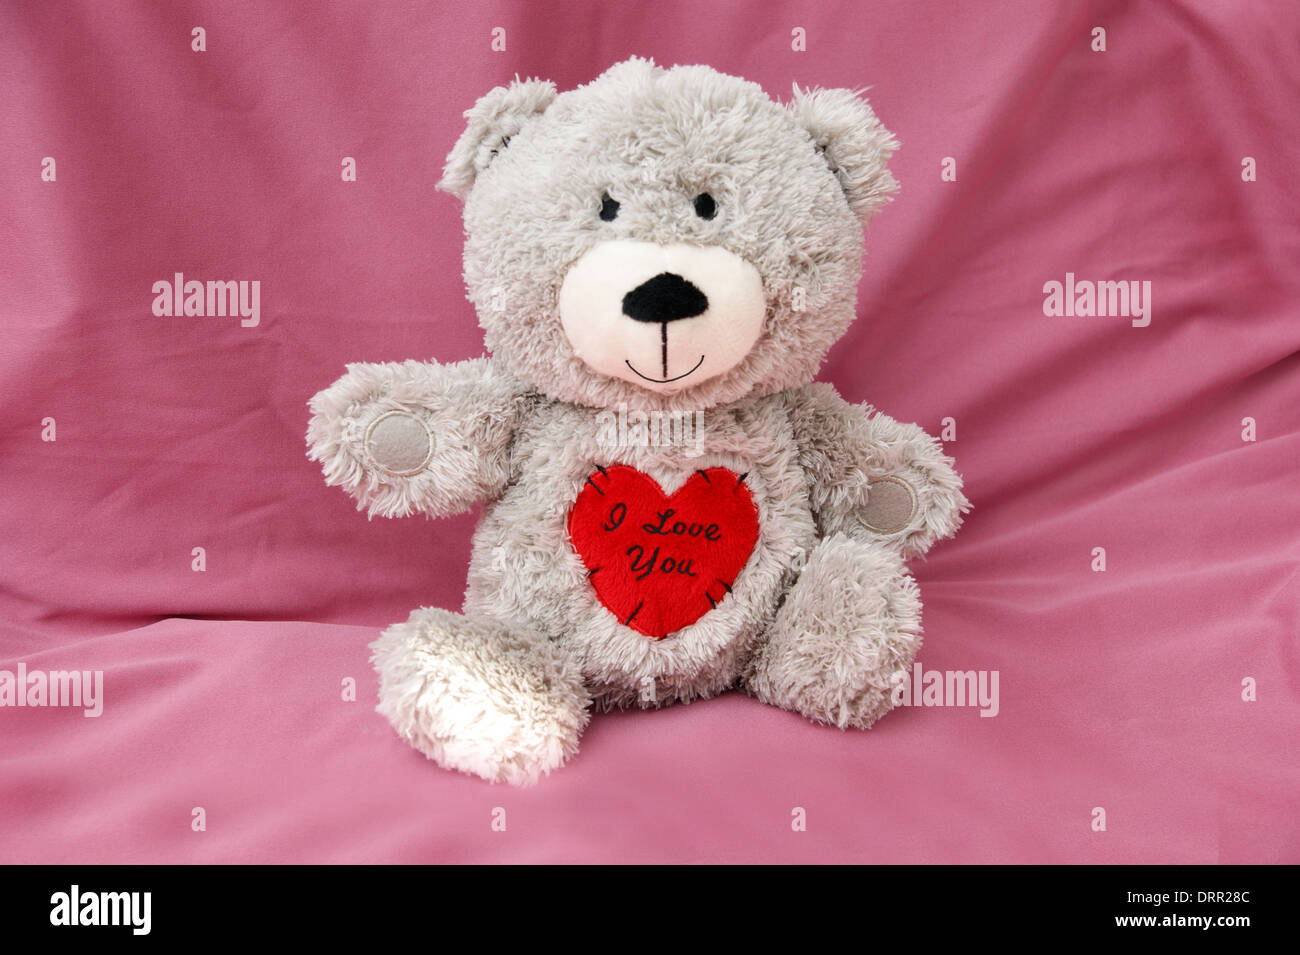 Valentines day teddy bear with a heart saying i love you stock valentines day teddy bear with a heart saying i love you altavistaventures Images